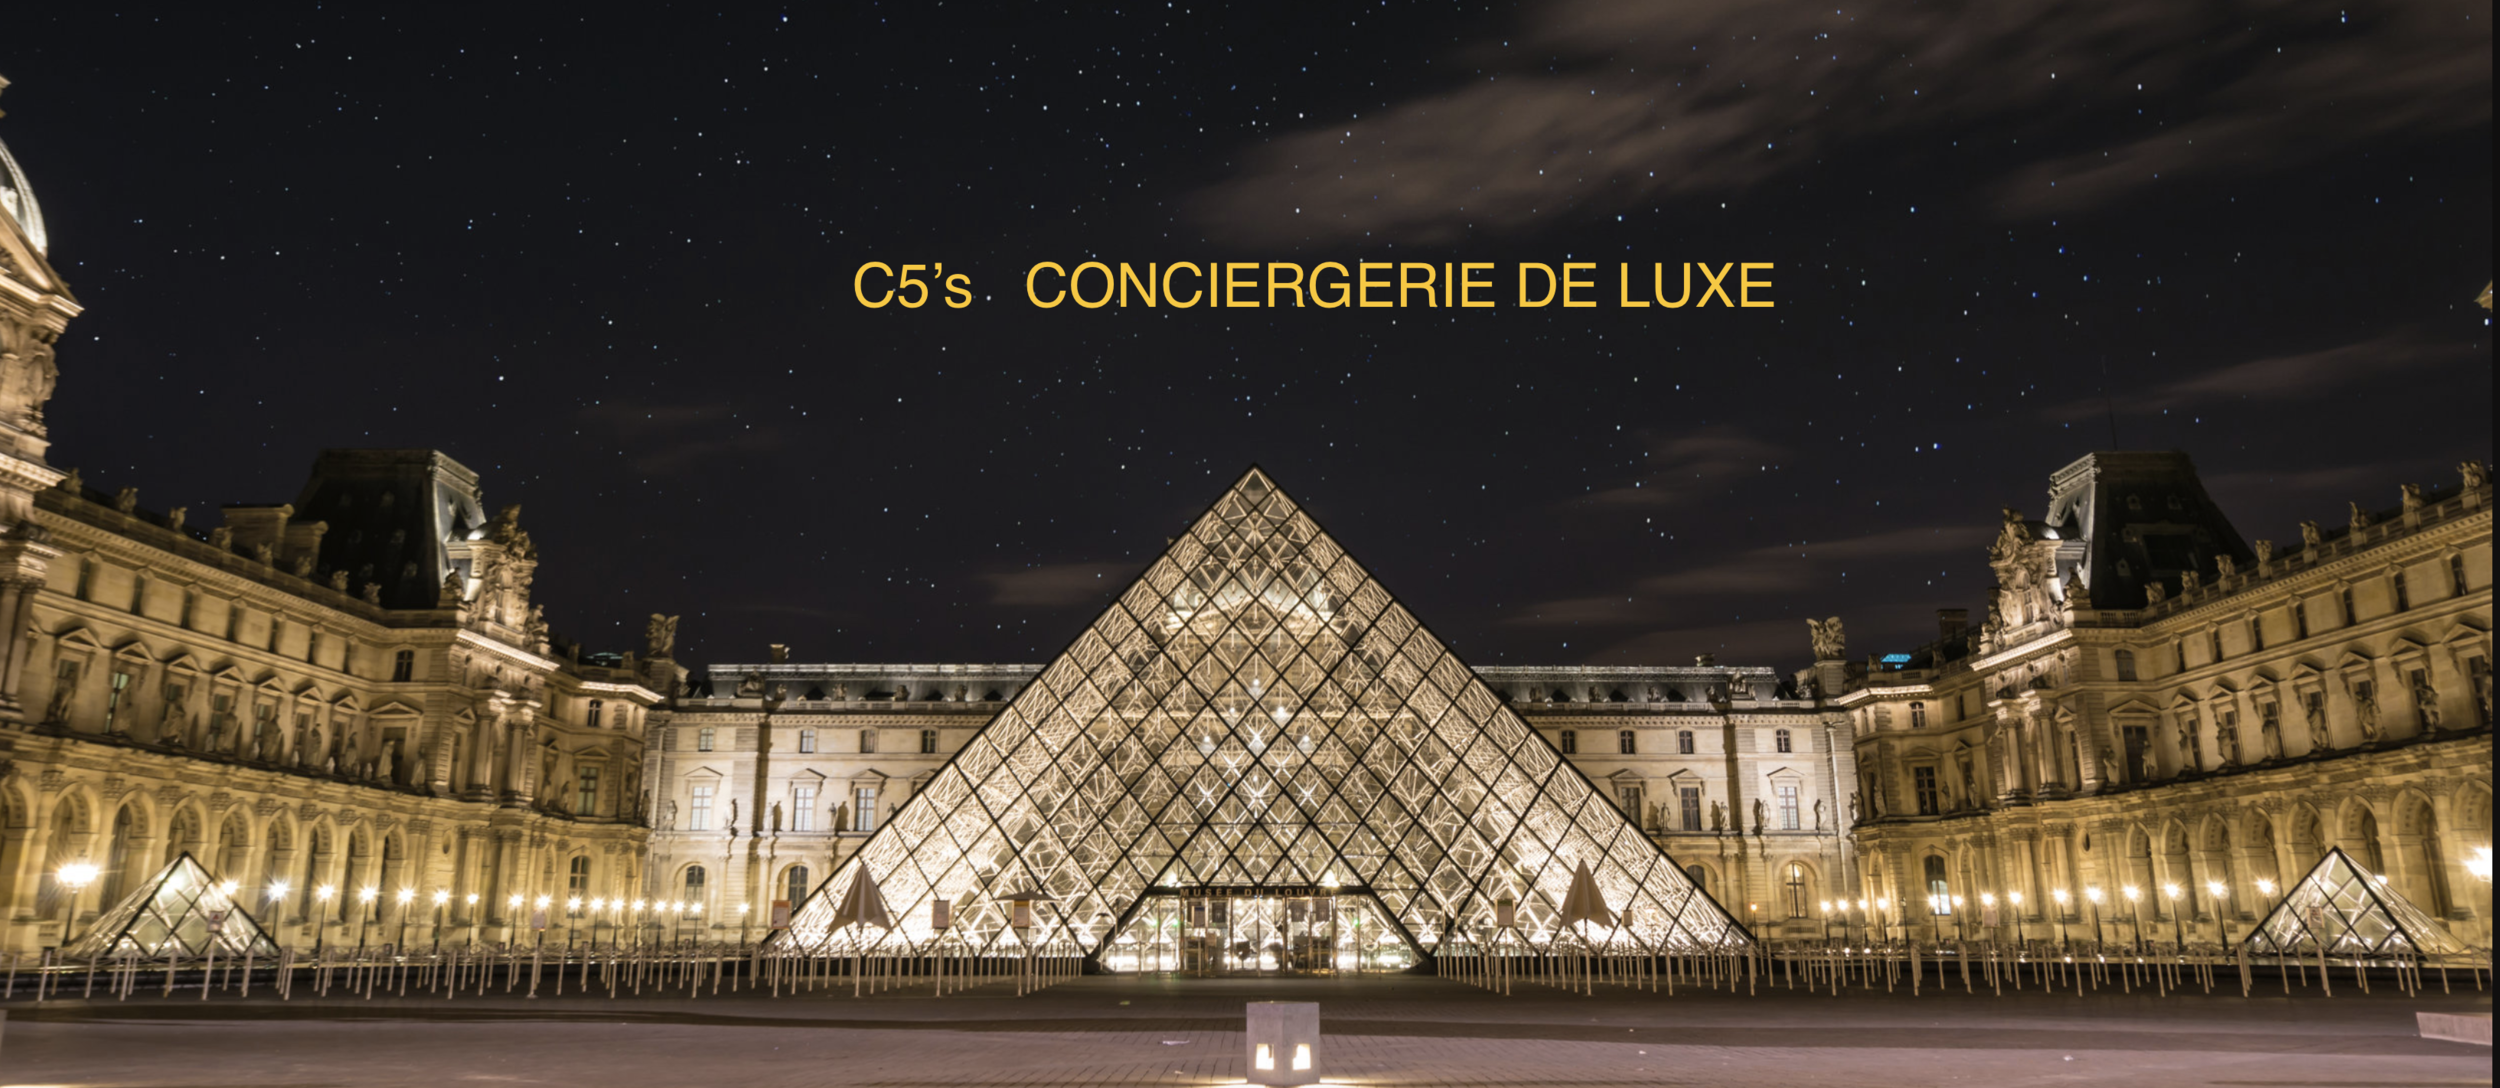 LOUVRE +C5s 15.54.22.png